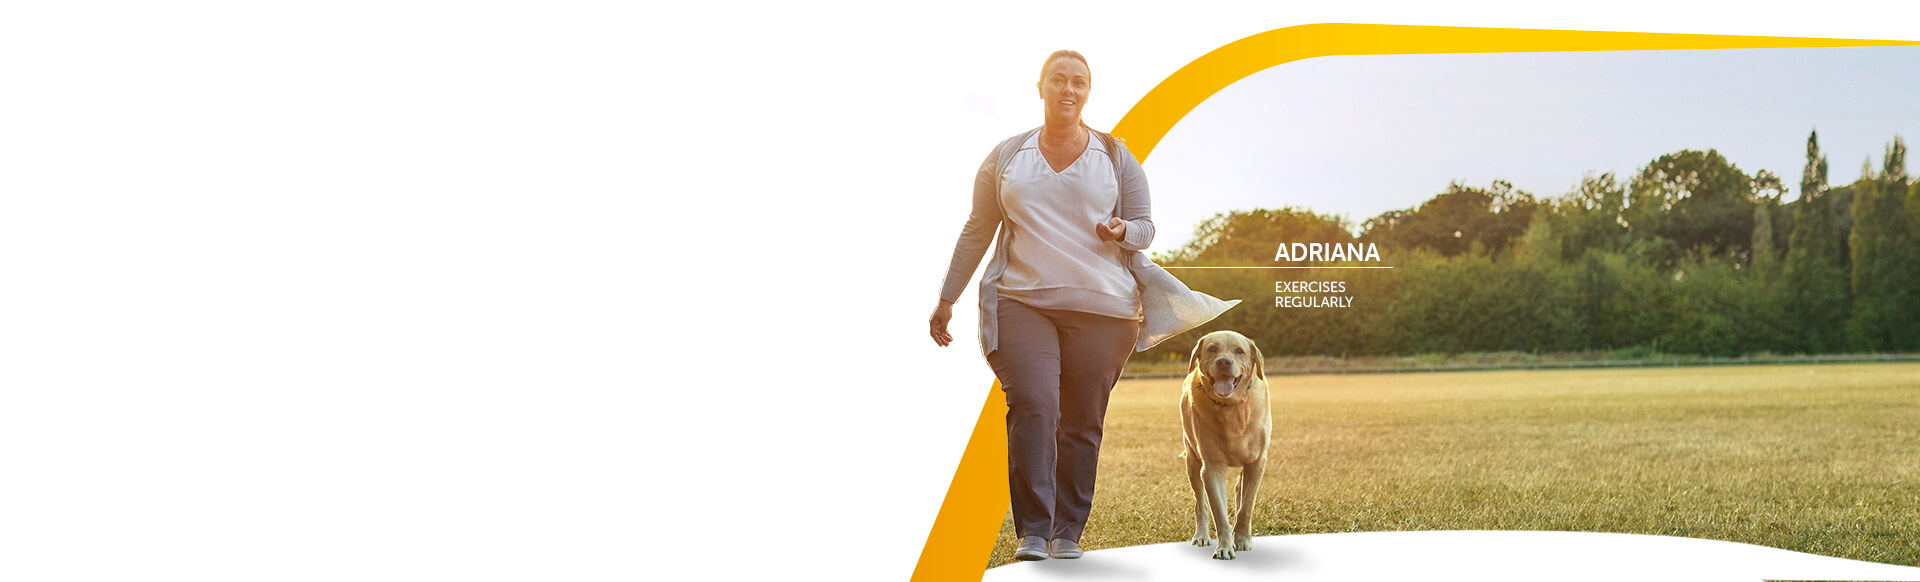 Image of a woman who exercises regularly with her dog